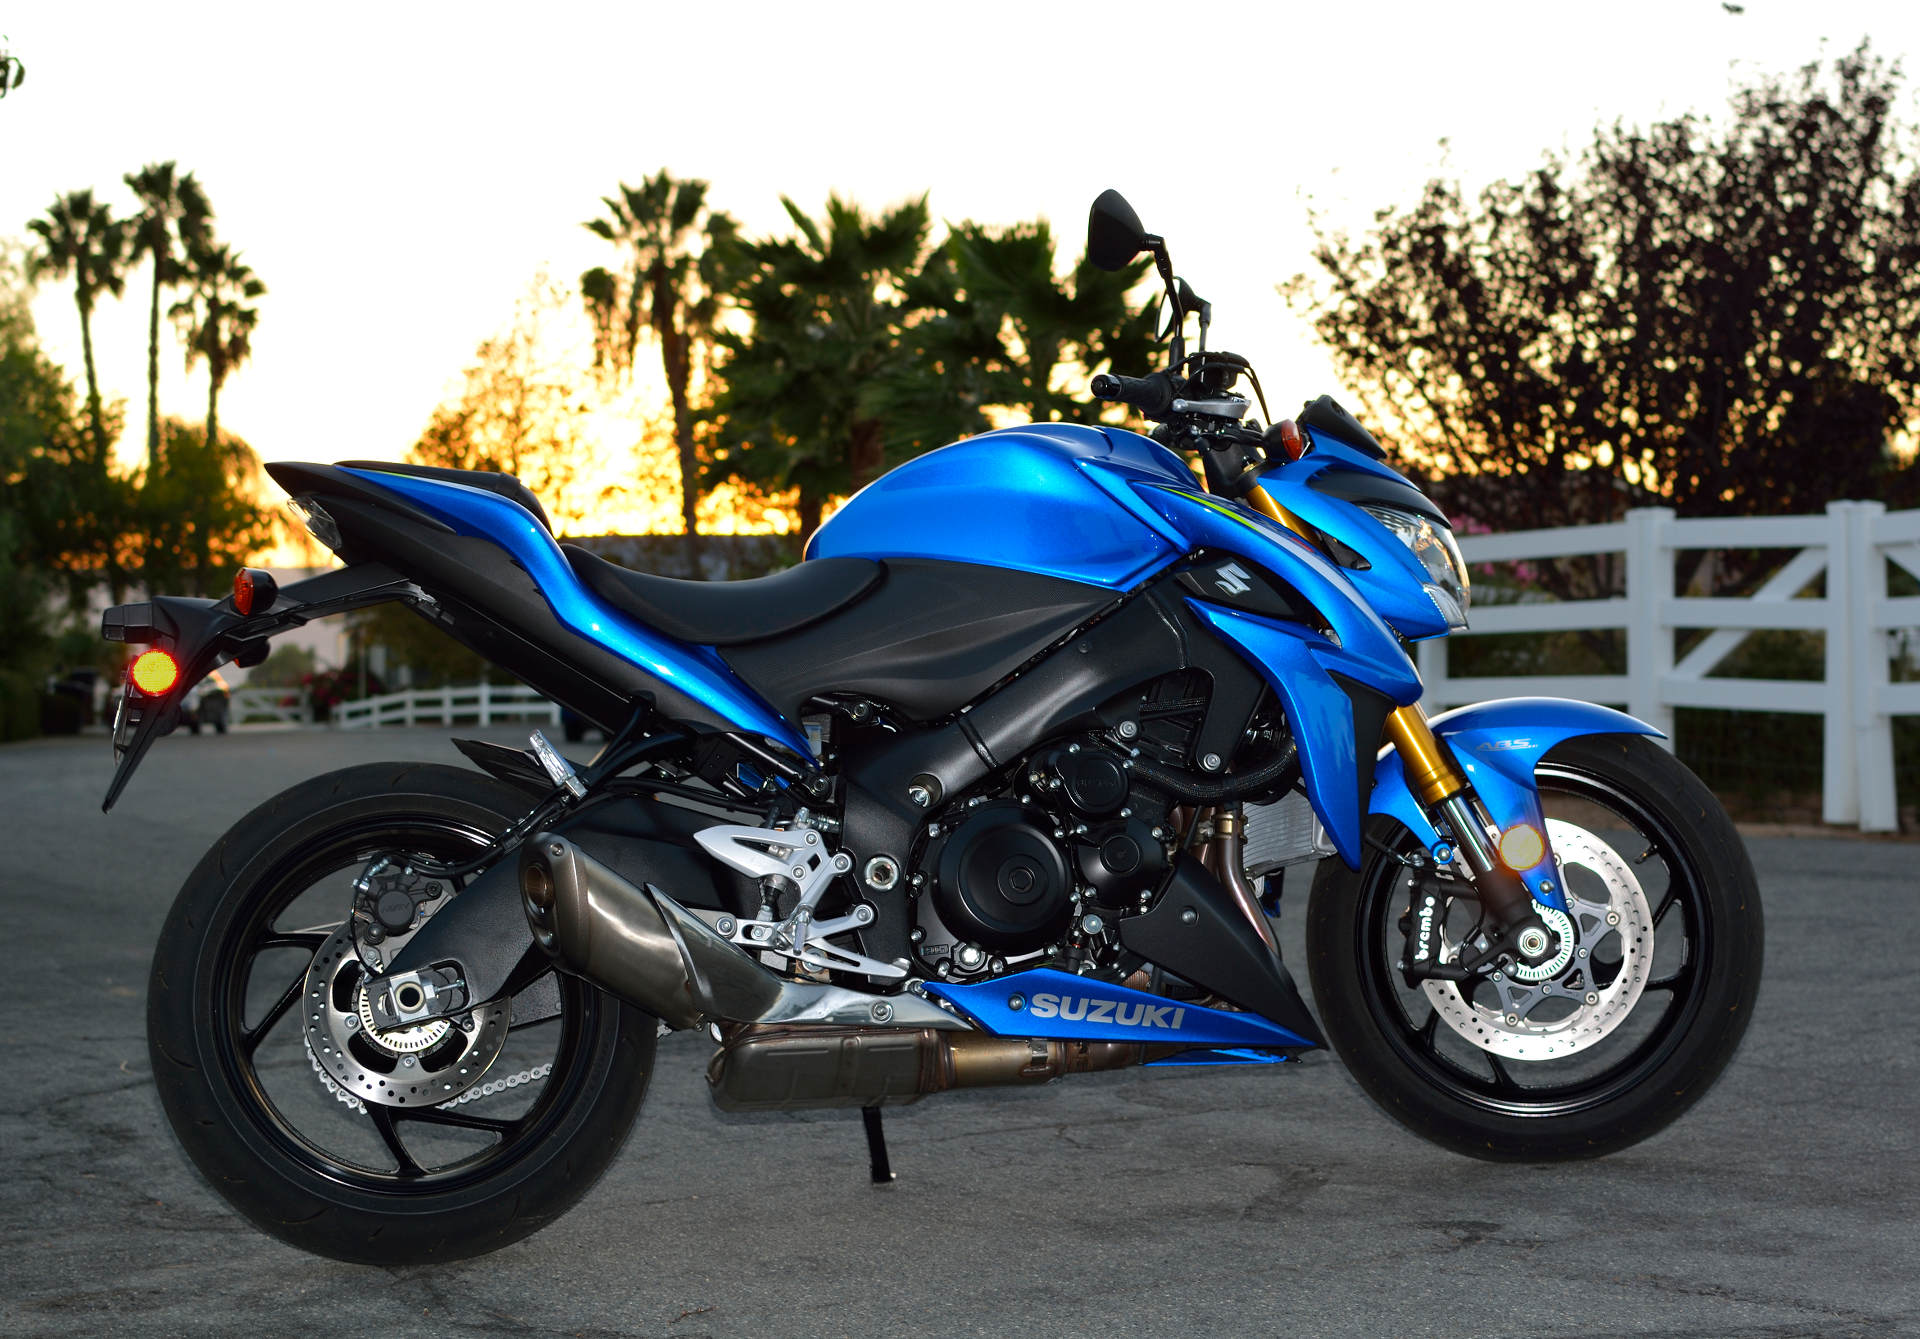 2016 suzuki gsx s1000 abs first thoughts on our test bike. Black Bedroom Furniture Sets. Home Design Ideas